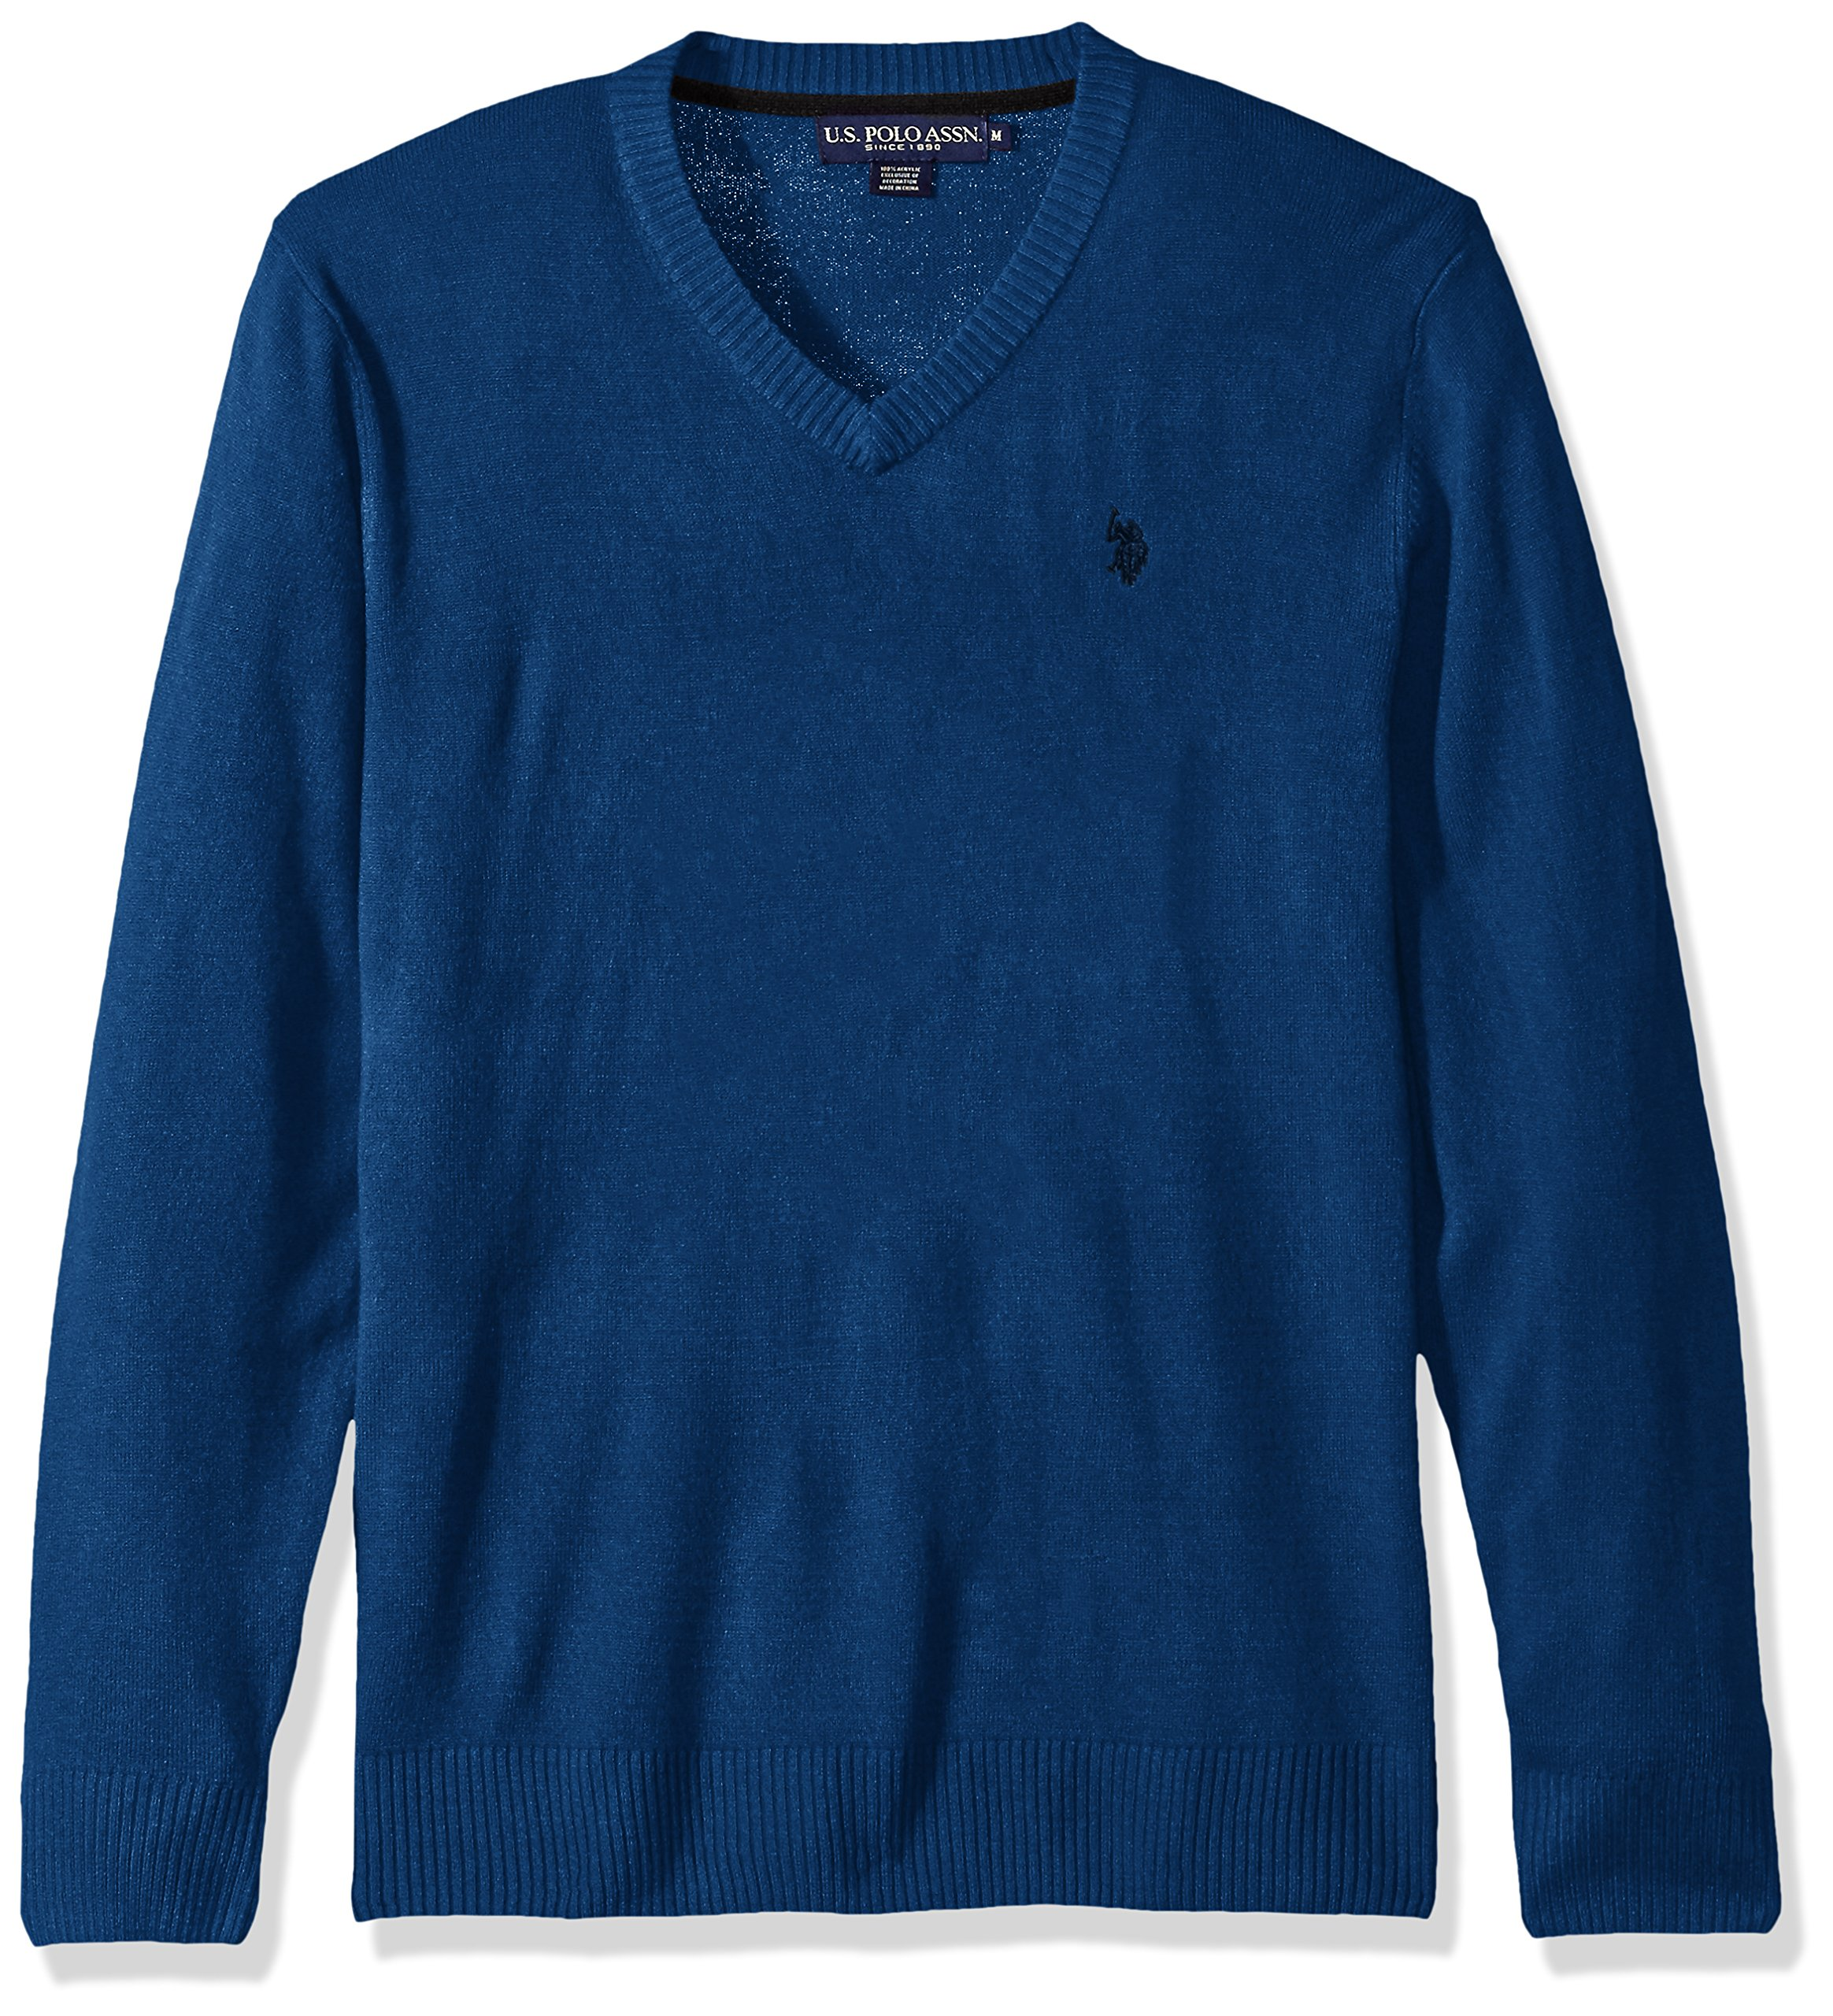 U.S. Polo Assn. Men's Solid V-Neck Sweater, Ocean Heather, Large